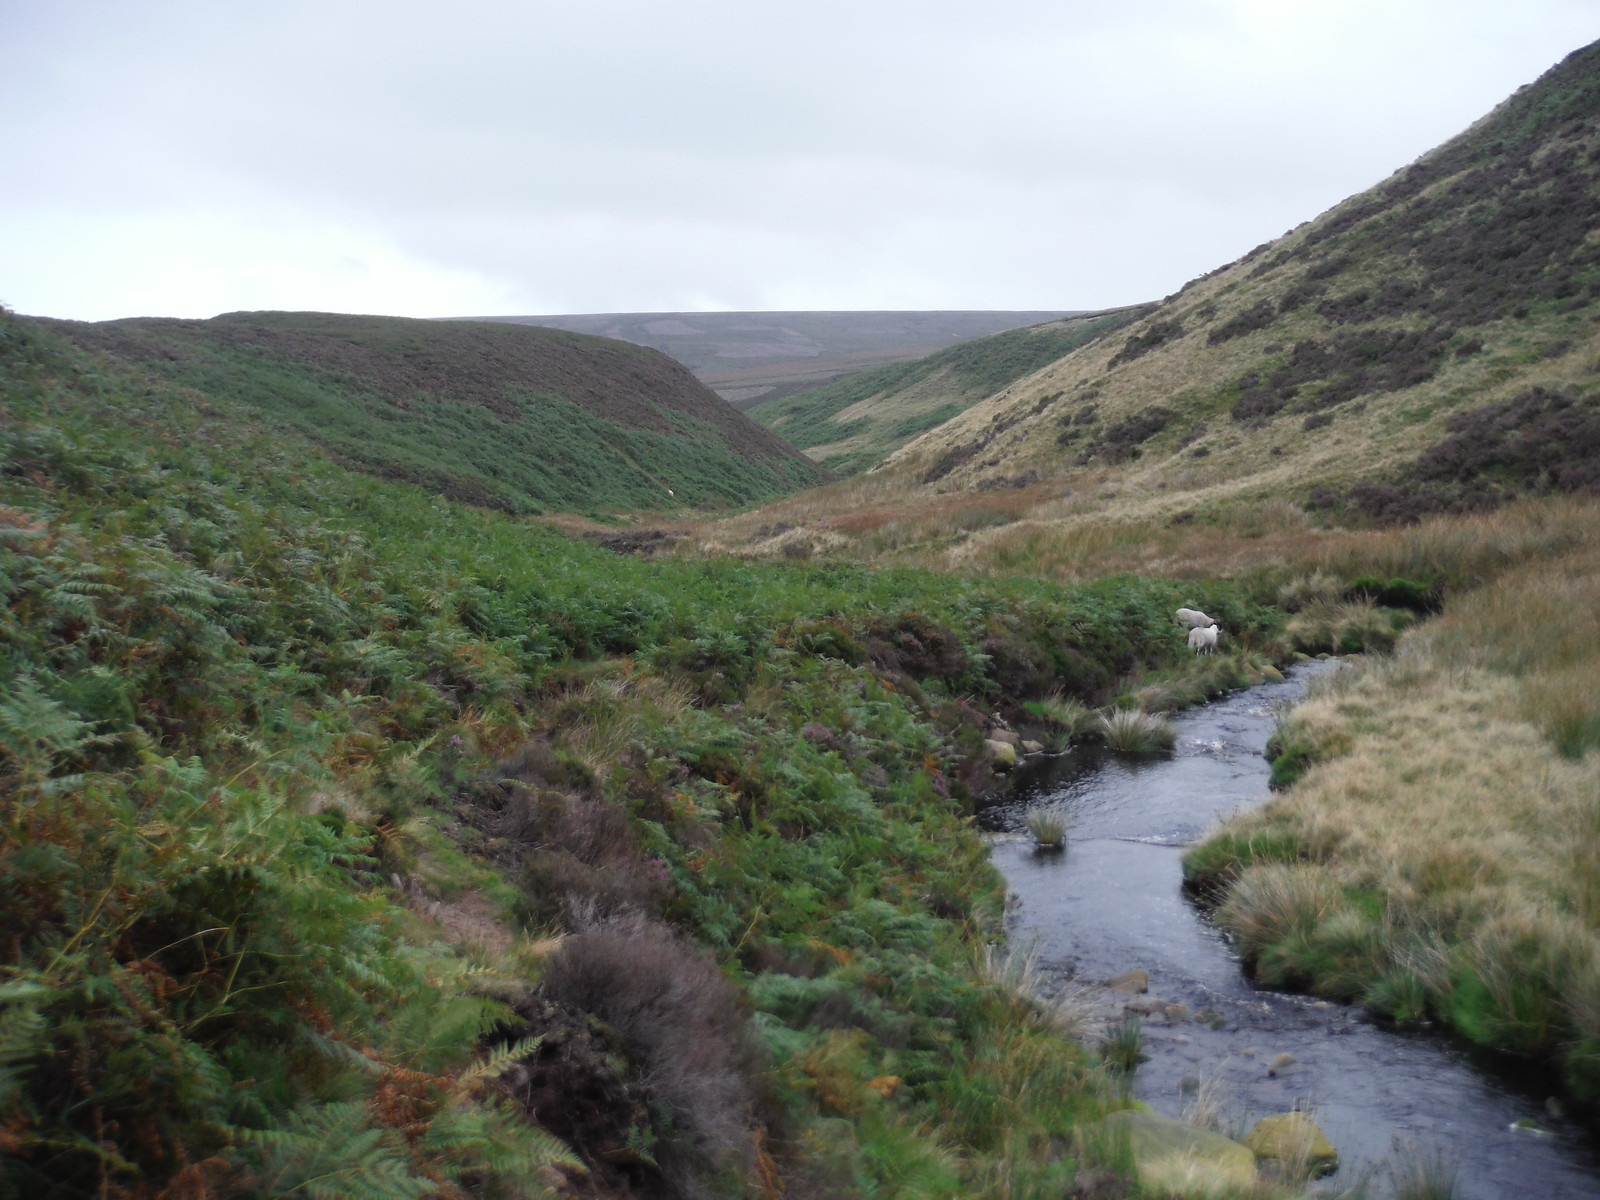 Upper Derwent Valley, downstream SWC Walk 350 - Fairholmes Circular (via Bleaklow and Derwent Head)